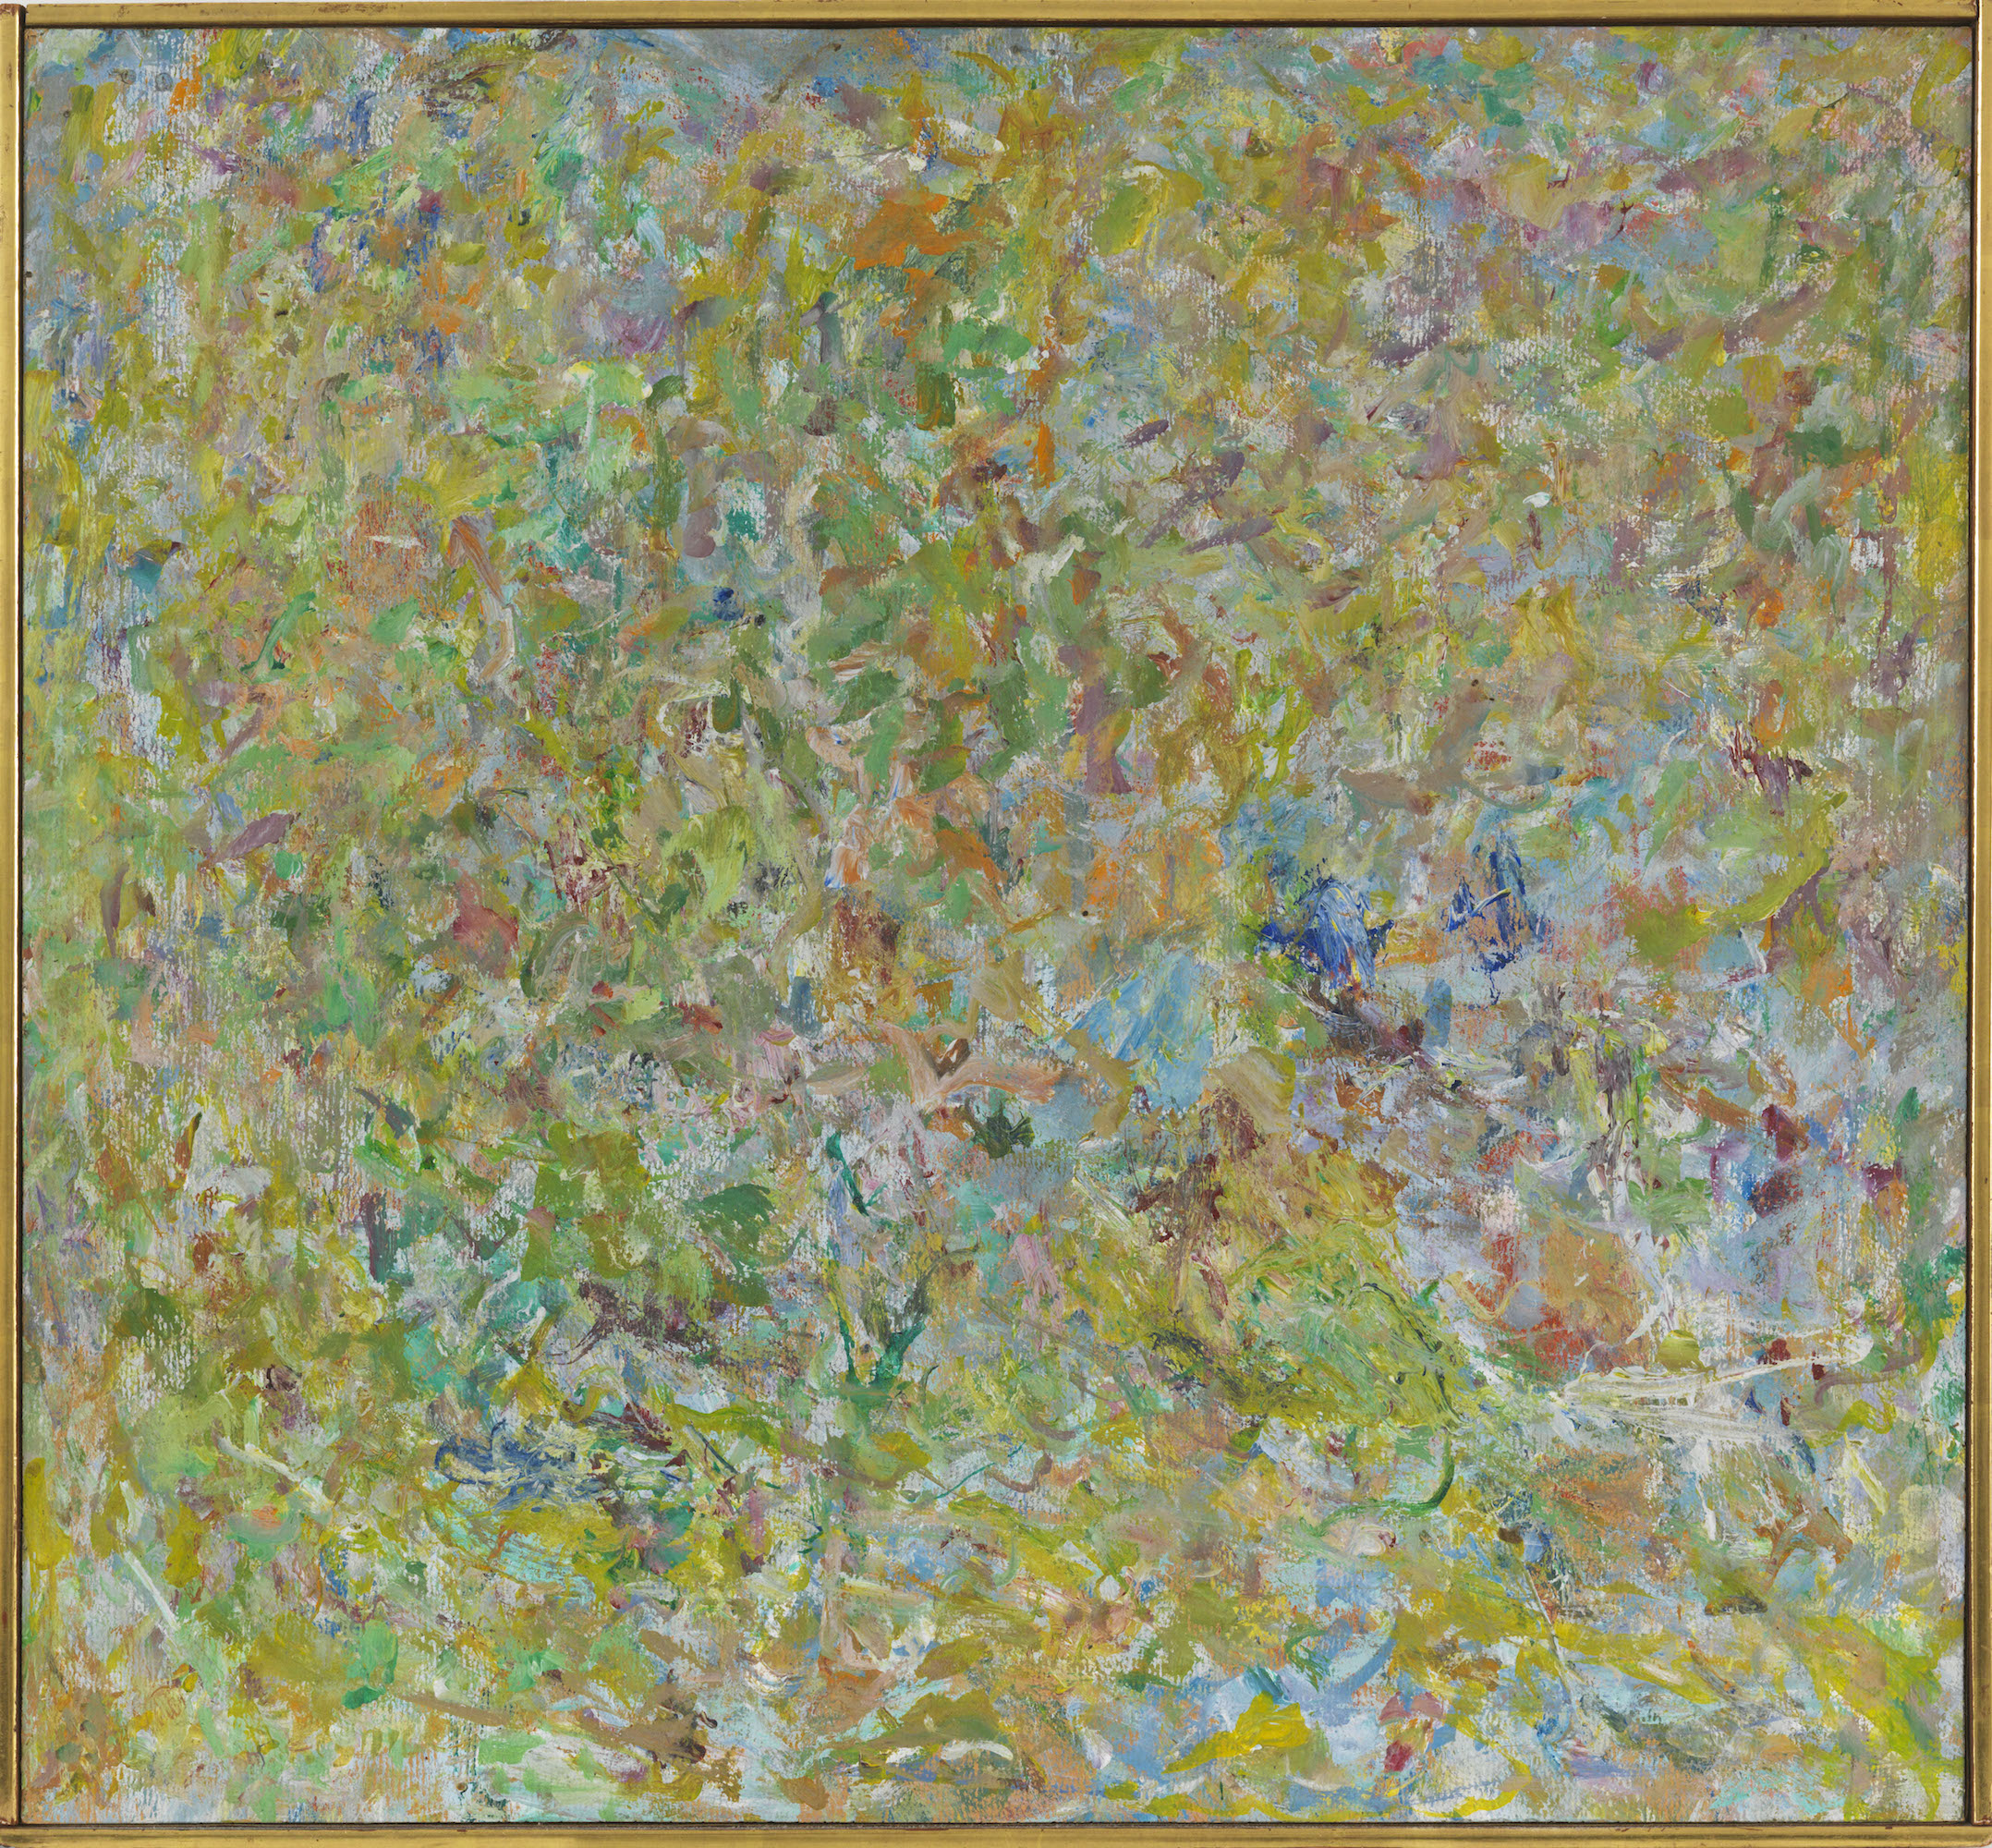 Milton Resnick  Untitled , 1962 Oil on canvas 20 x 21.5 inches